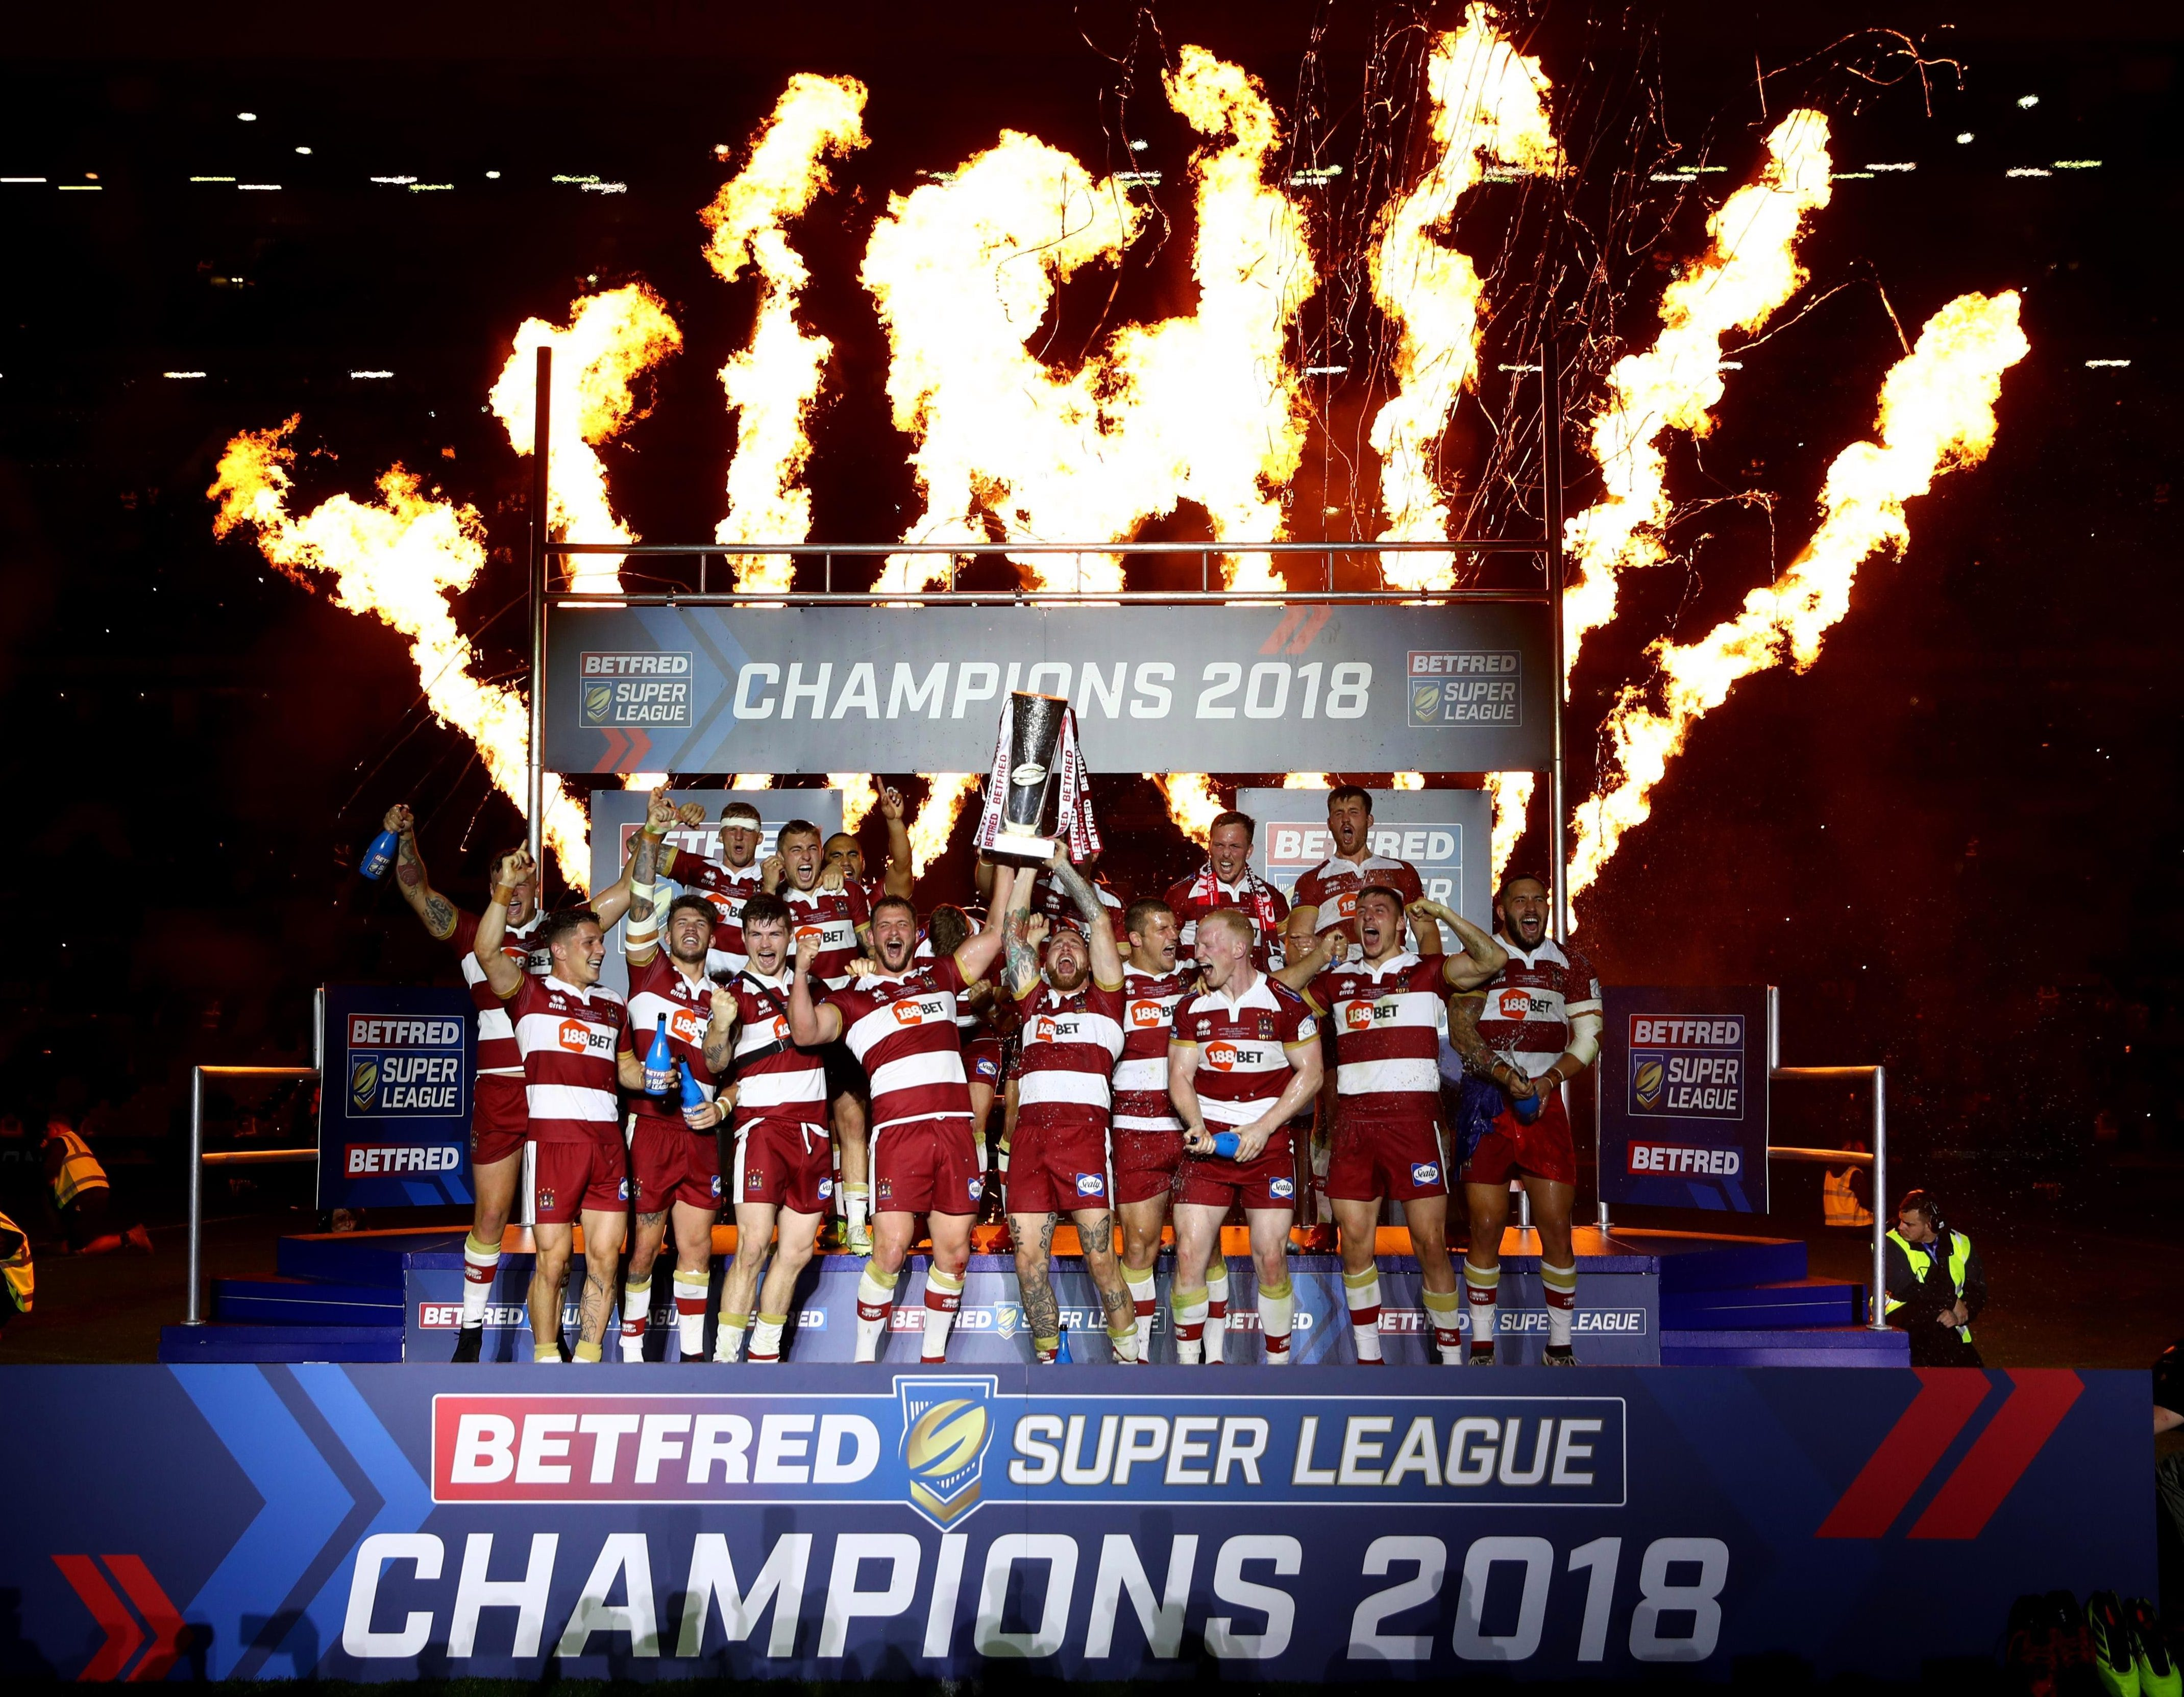 It was a night of celebrations for Wigan after their third Grand Final joy